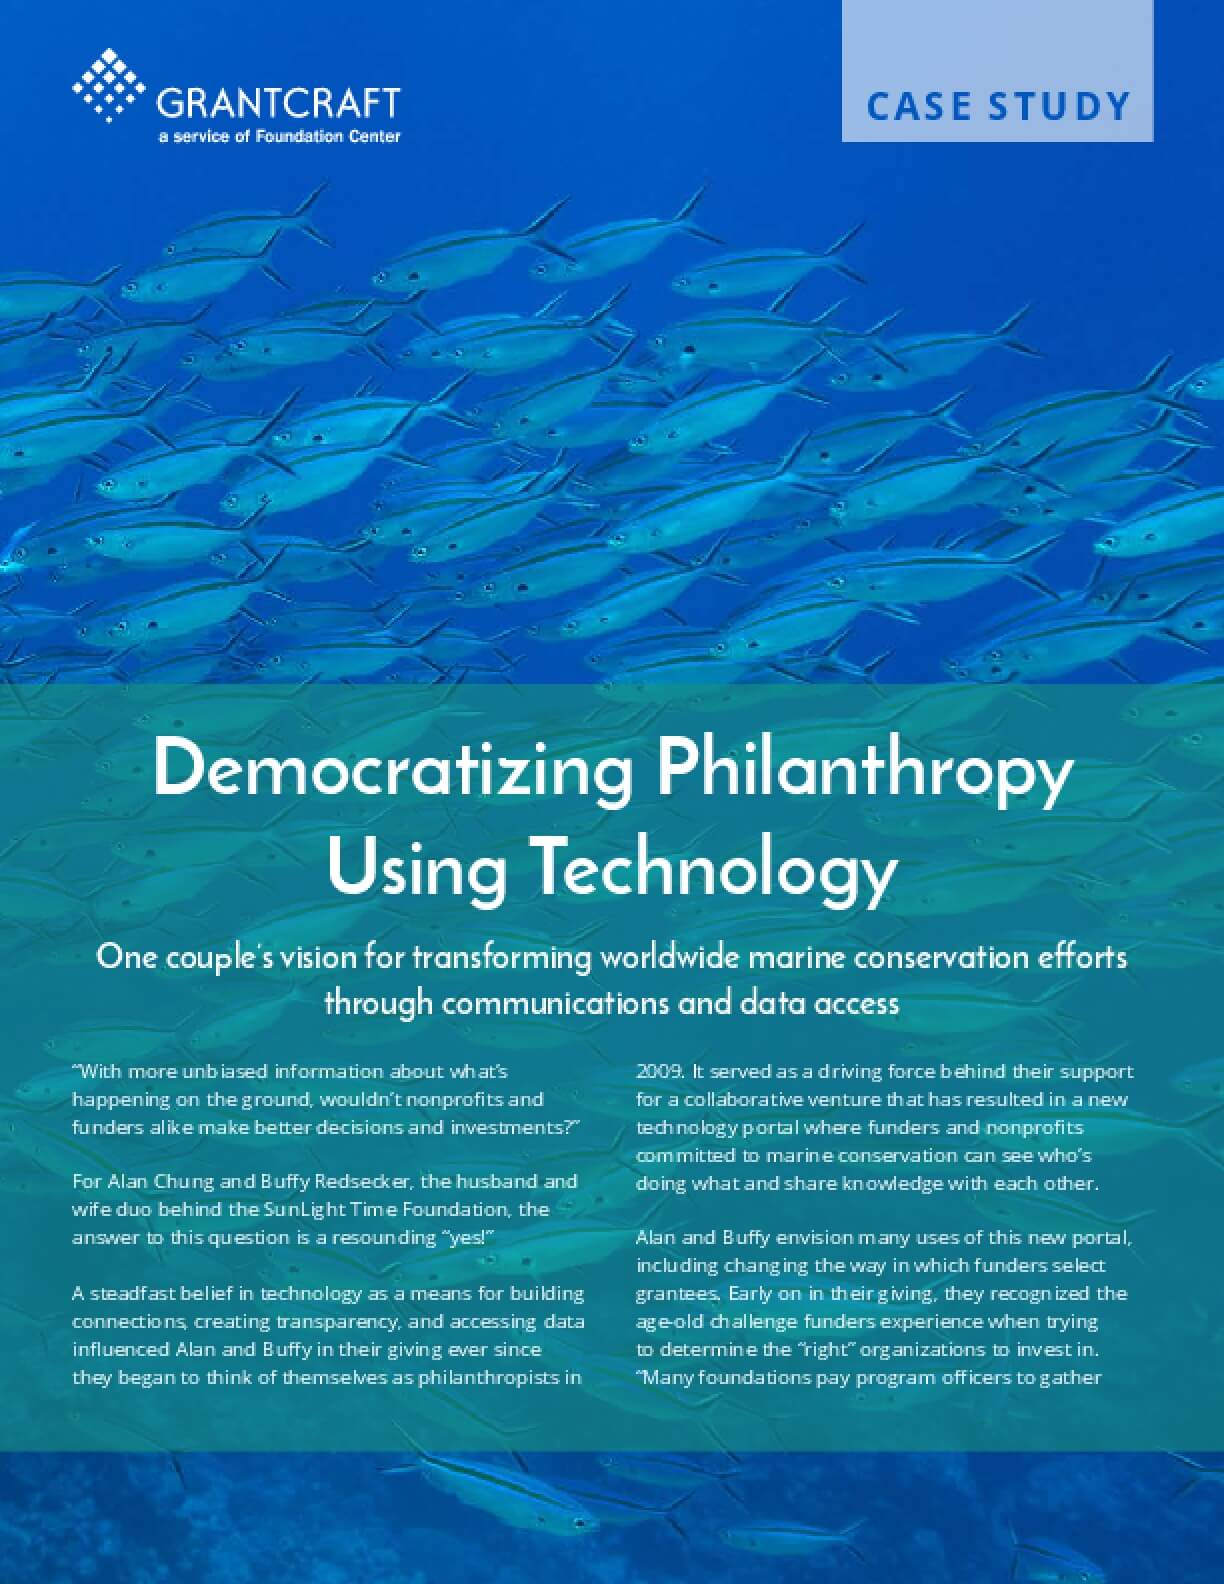 Democratizing Philanthropy Using Technology